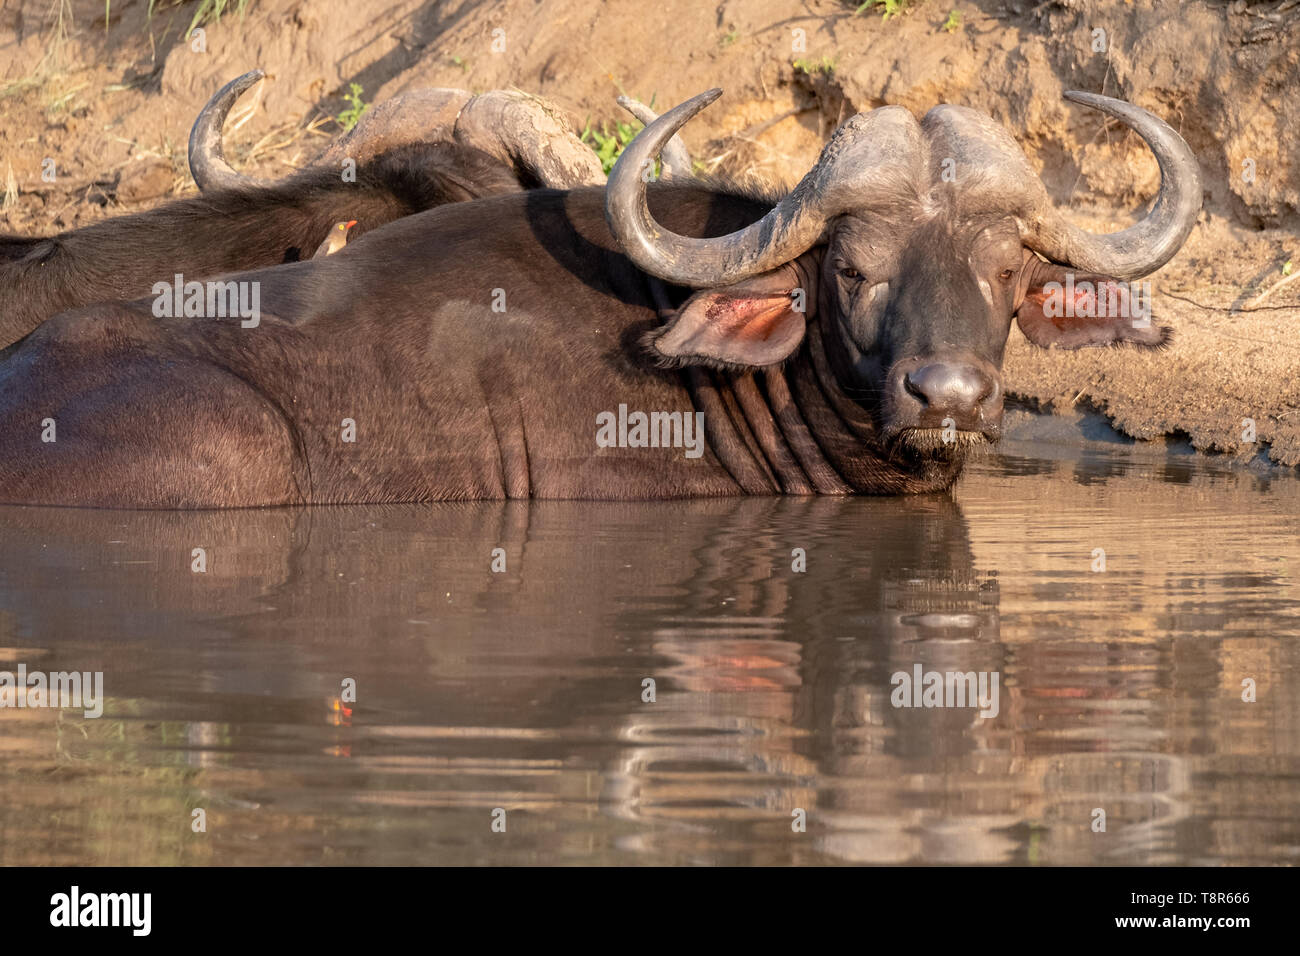 African Buffalo basking in the water in the late afternoon sun, photographed at Kruger National Park in South Africa. Stock Photo